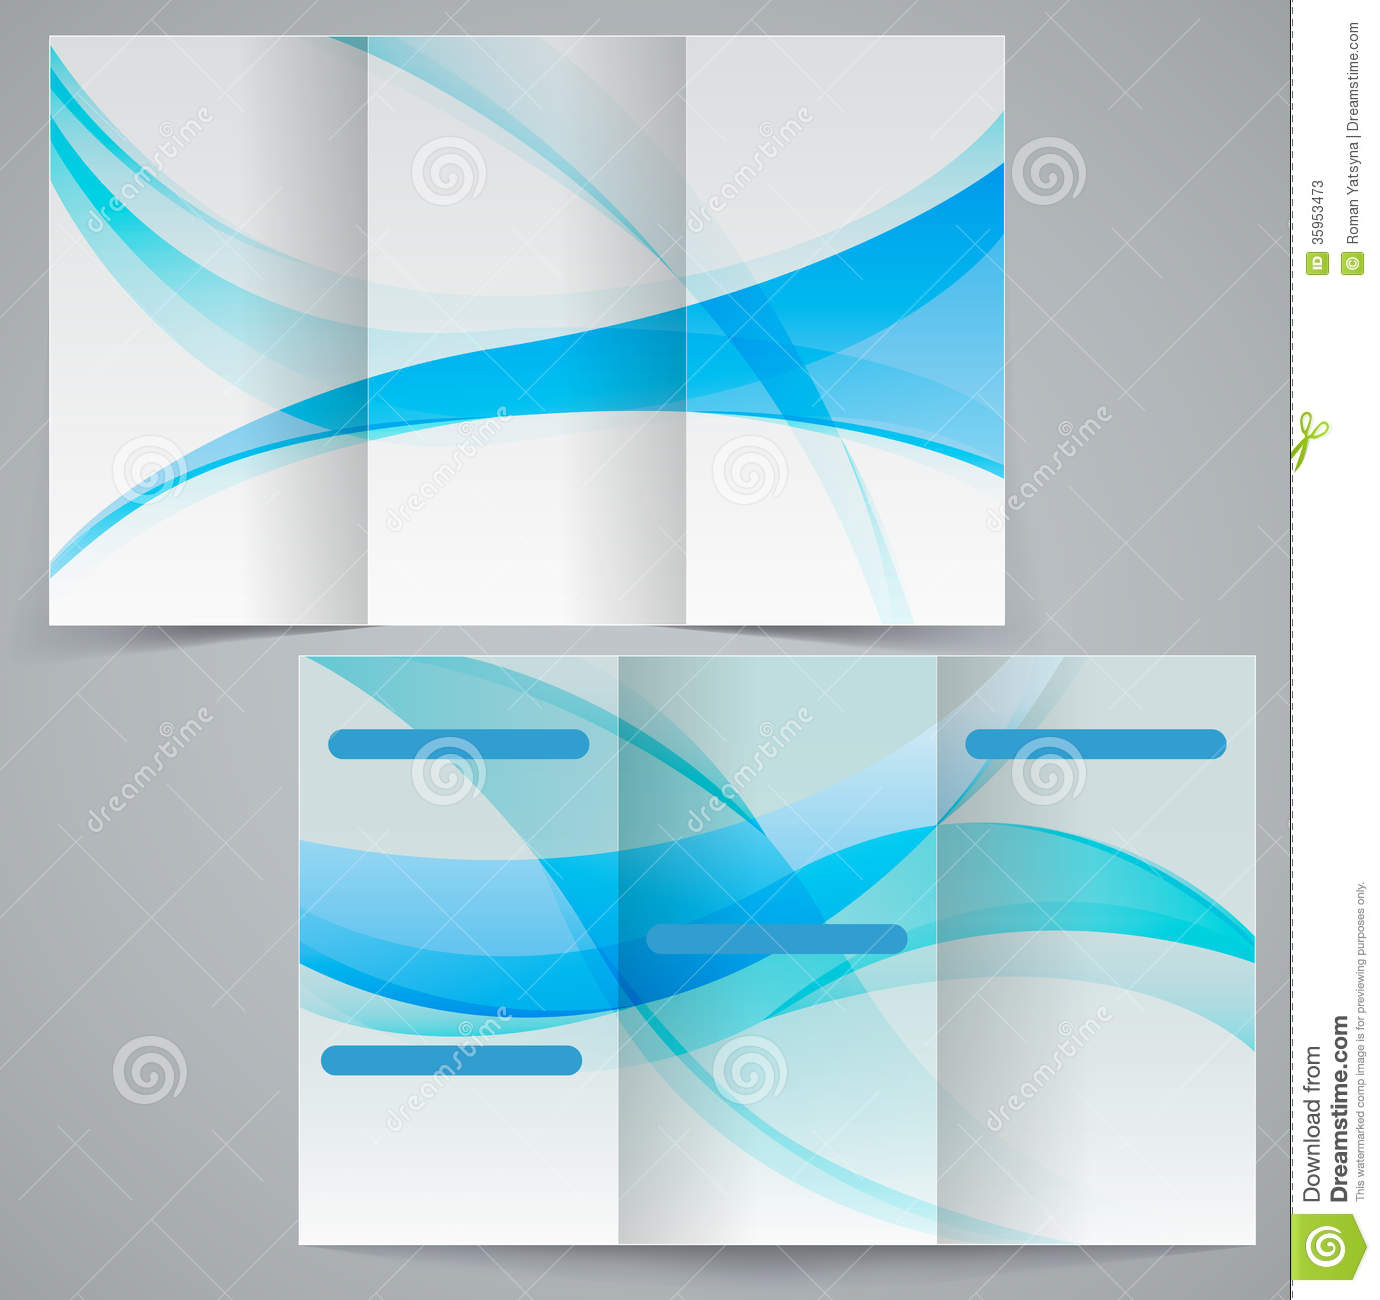 Tri Fold Business Brochure Template, Vector Blue D  Microsoft Trifold Template